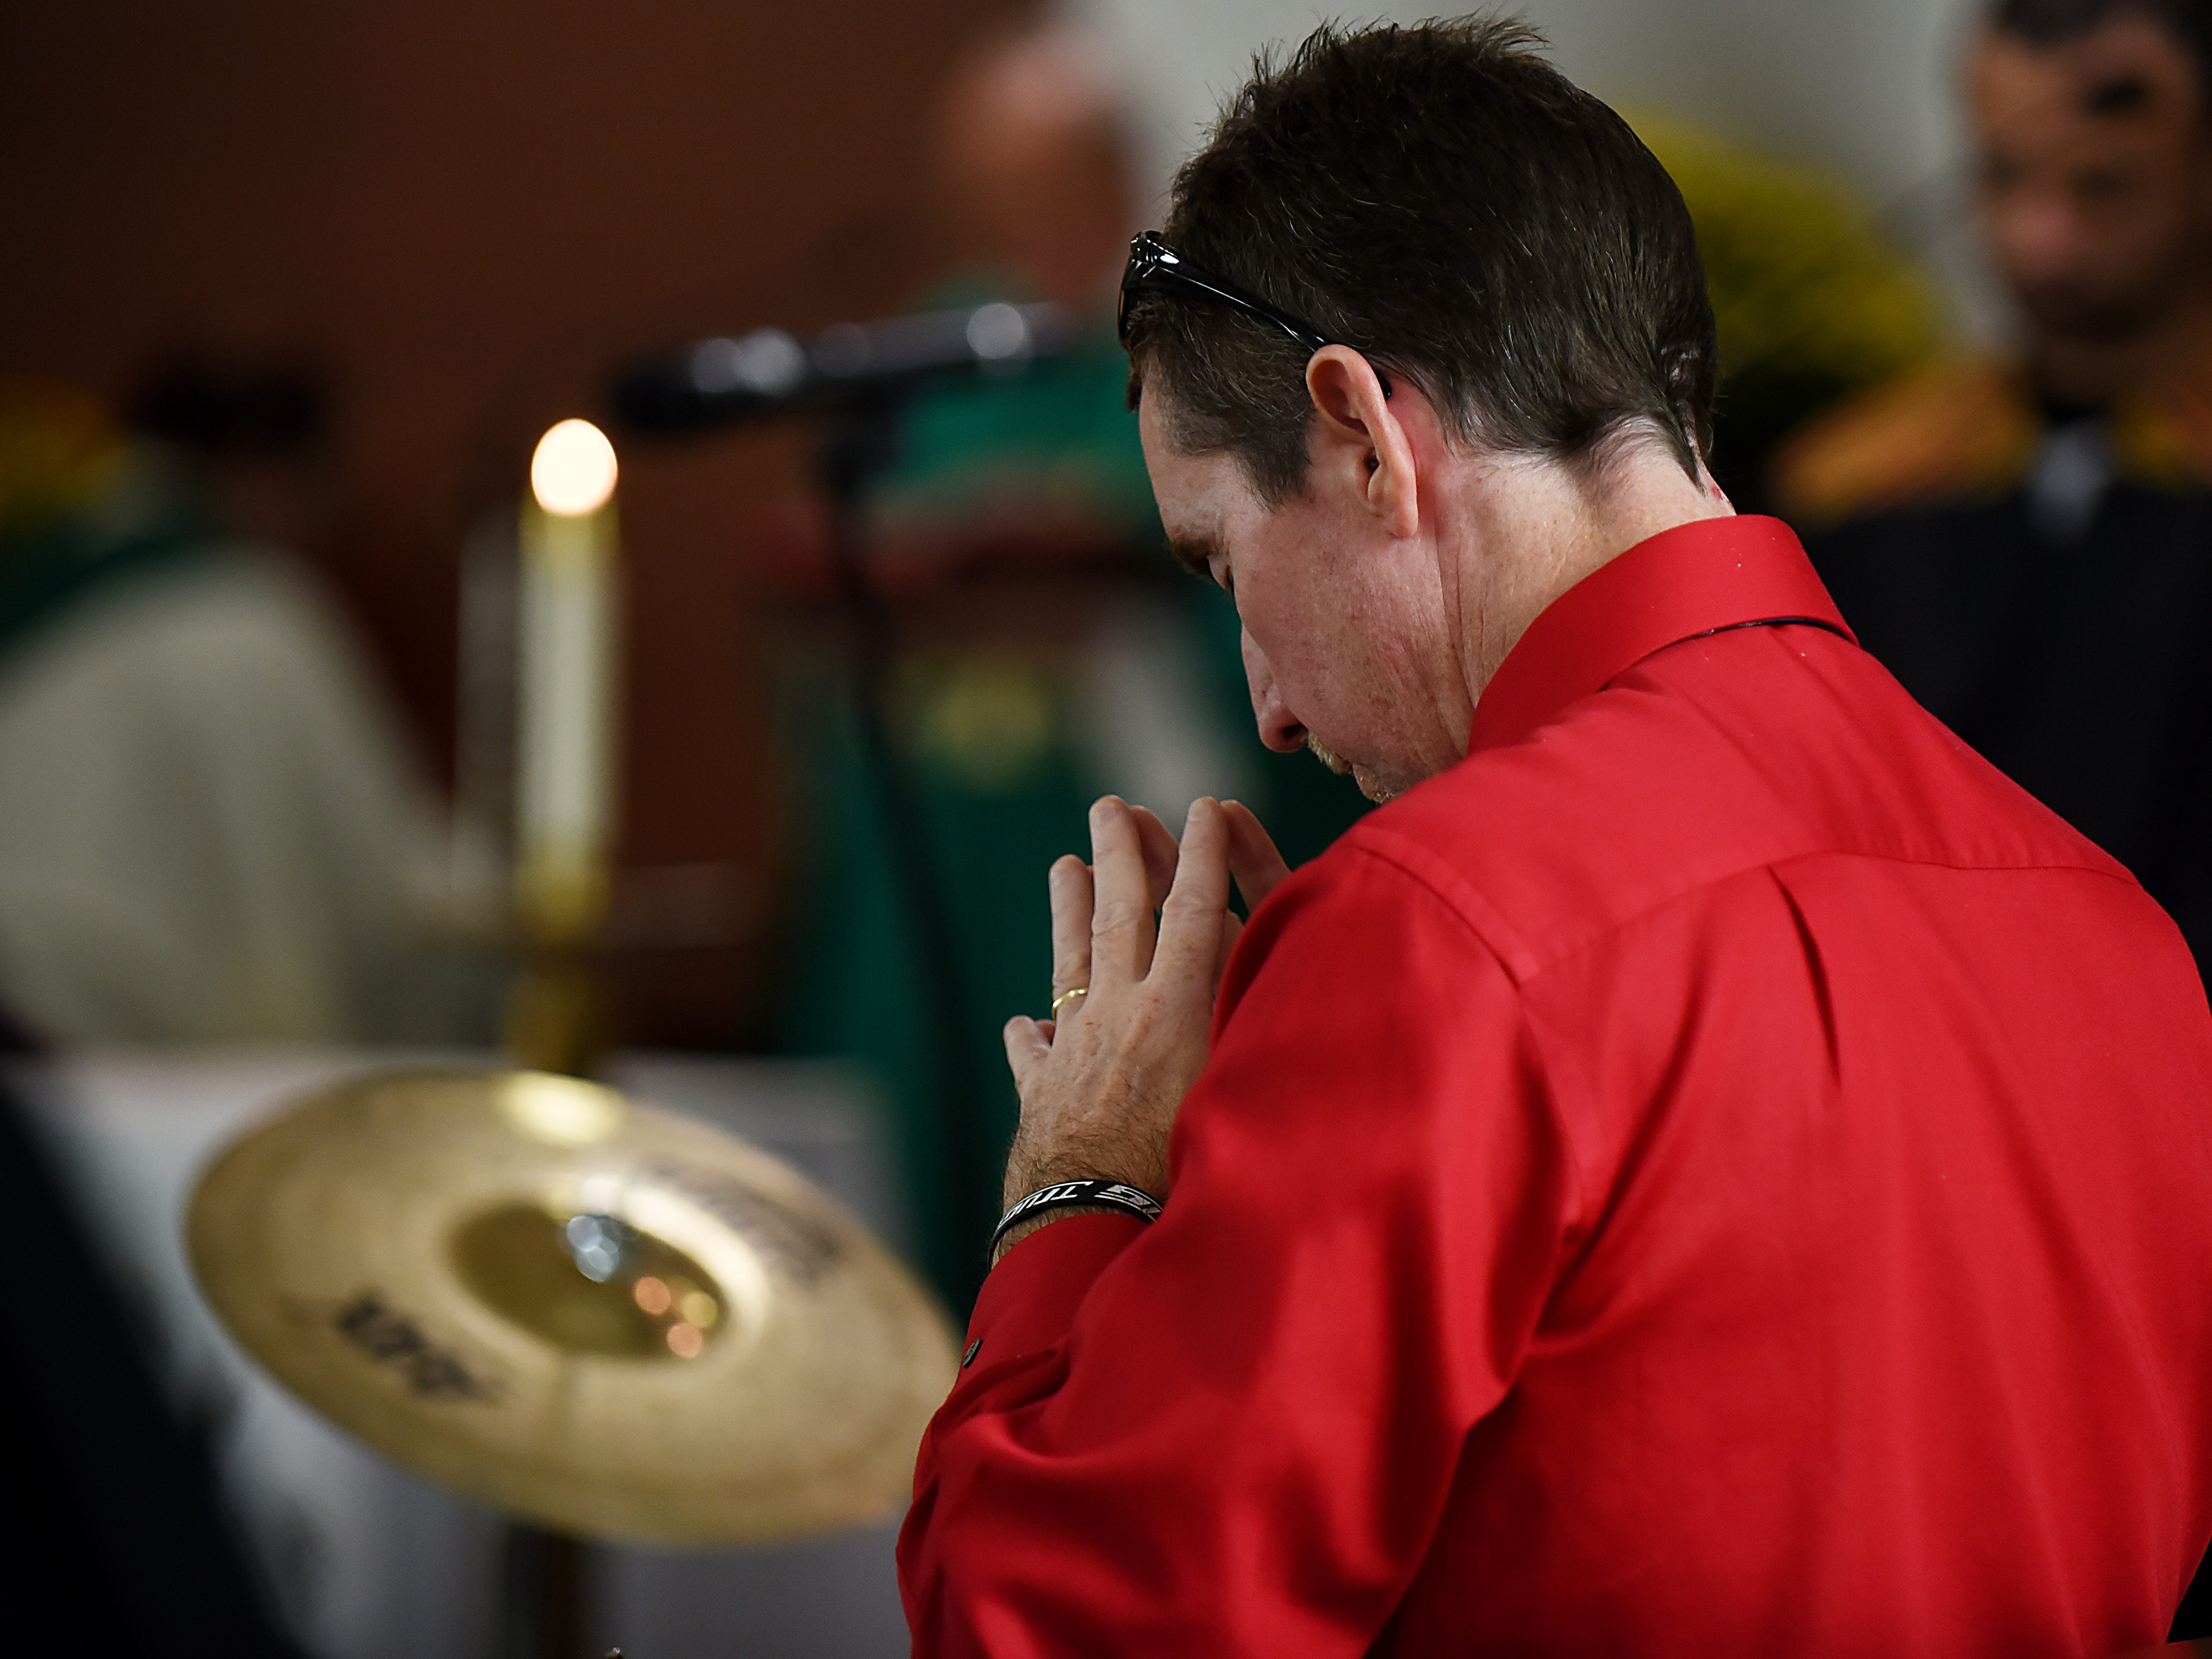 John, the drummer for the Straight and Narrow Choir, pauses to pray during a performance at Saint Joseph's Roman Catholic Church in Lincoln Park on Sunday October 14, 2018.